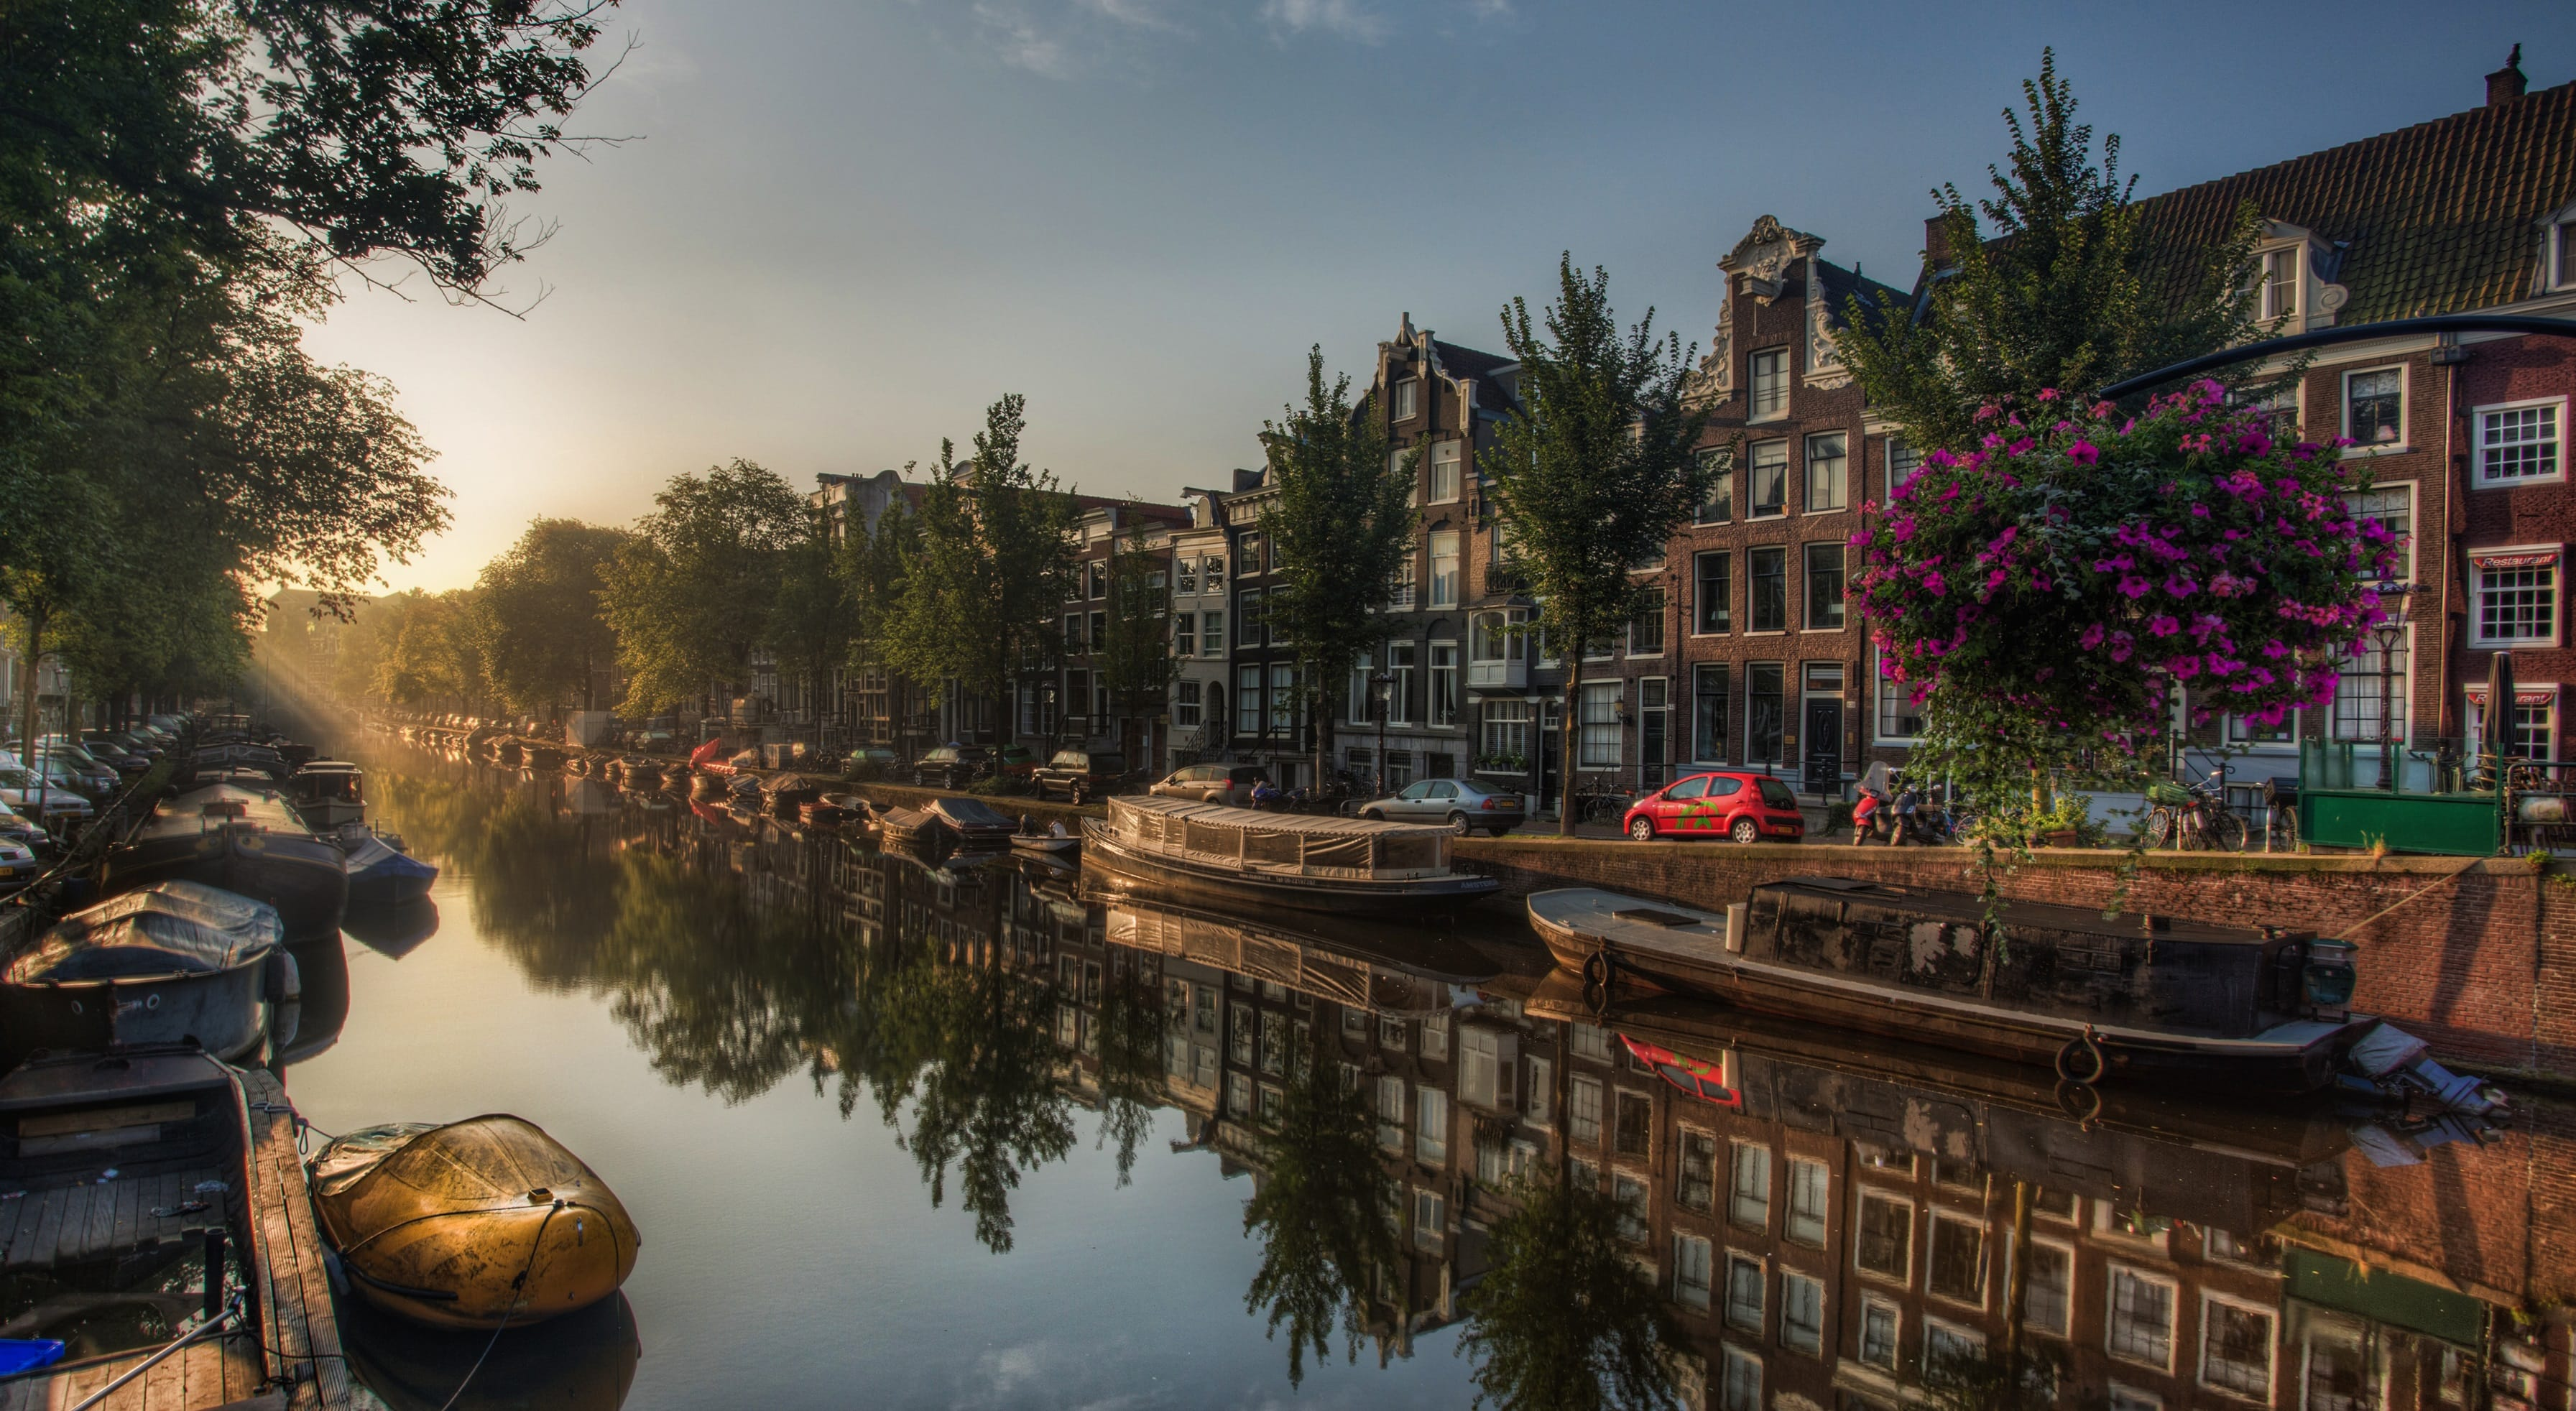 Amsterdam widescreen for desktop